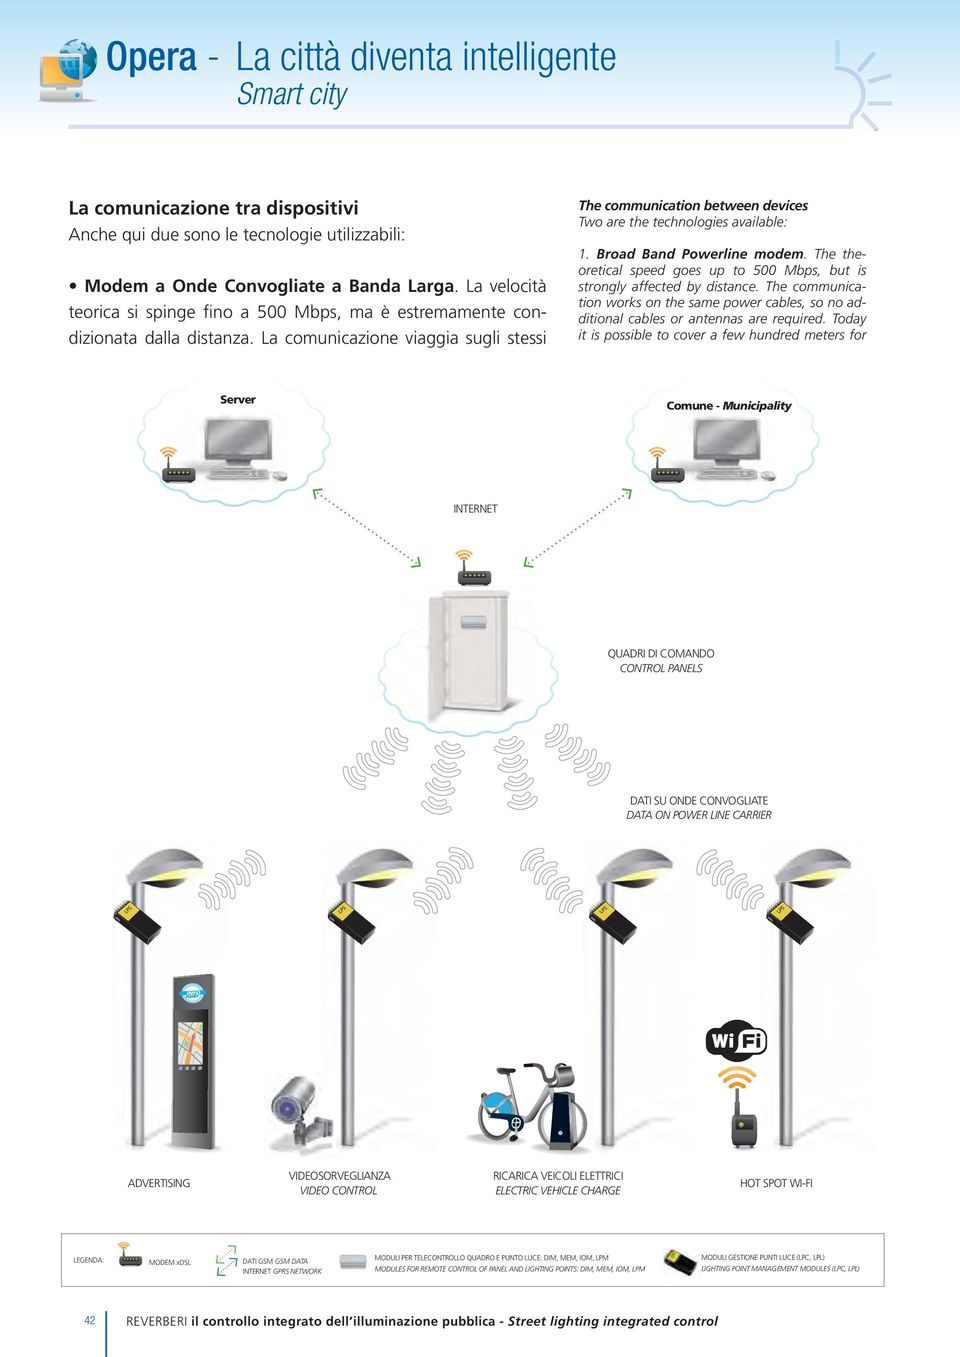 La comunicazione viaggia sugli stessi The communication between devices Two are the technologies available: 1. Broad Band Powerline modem.